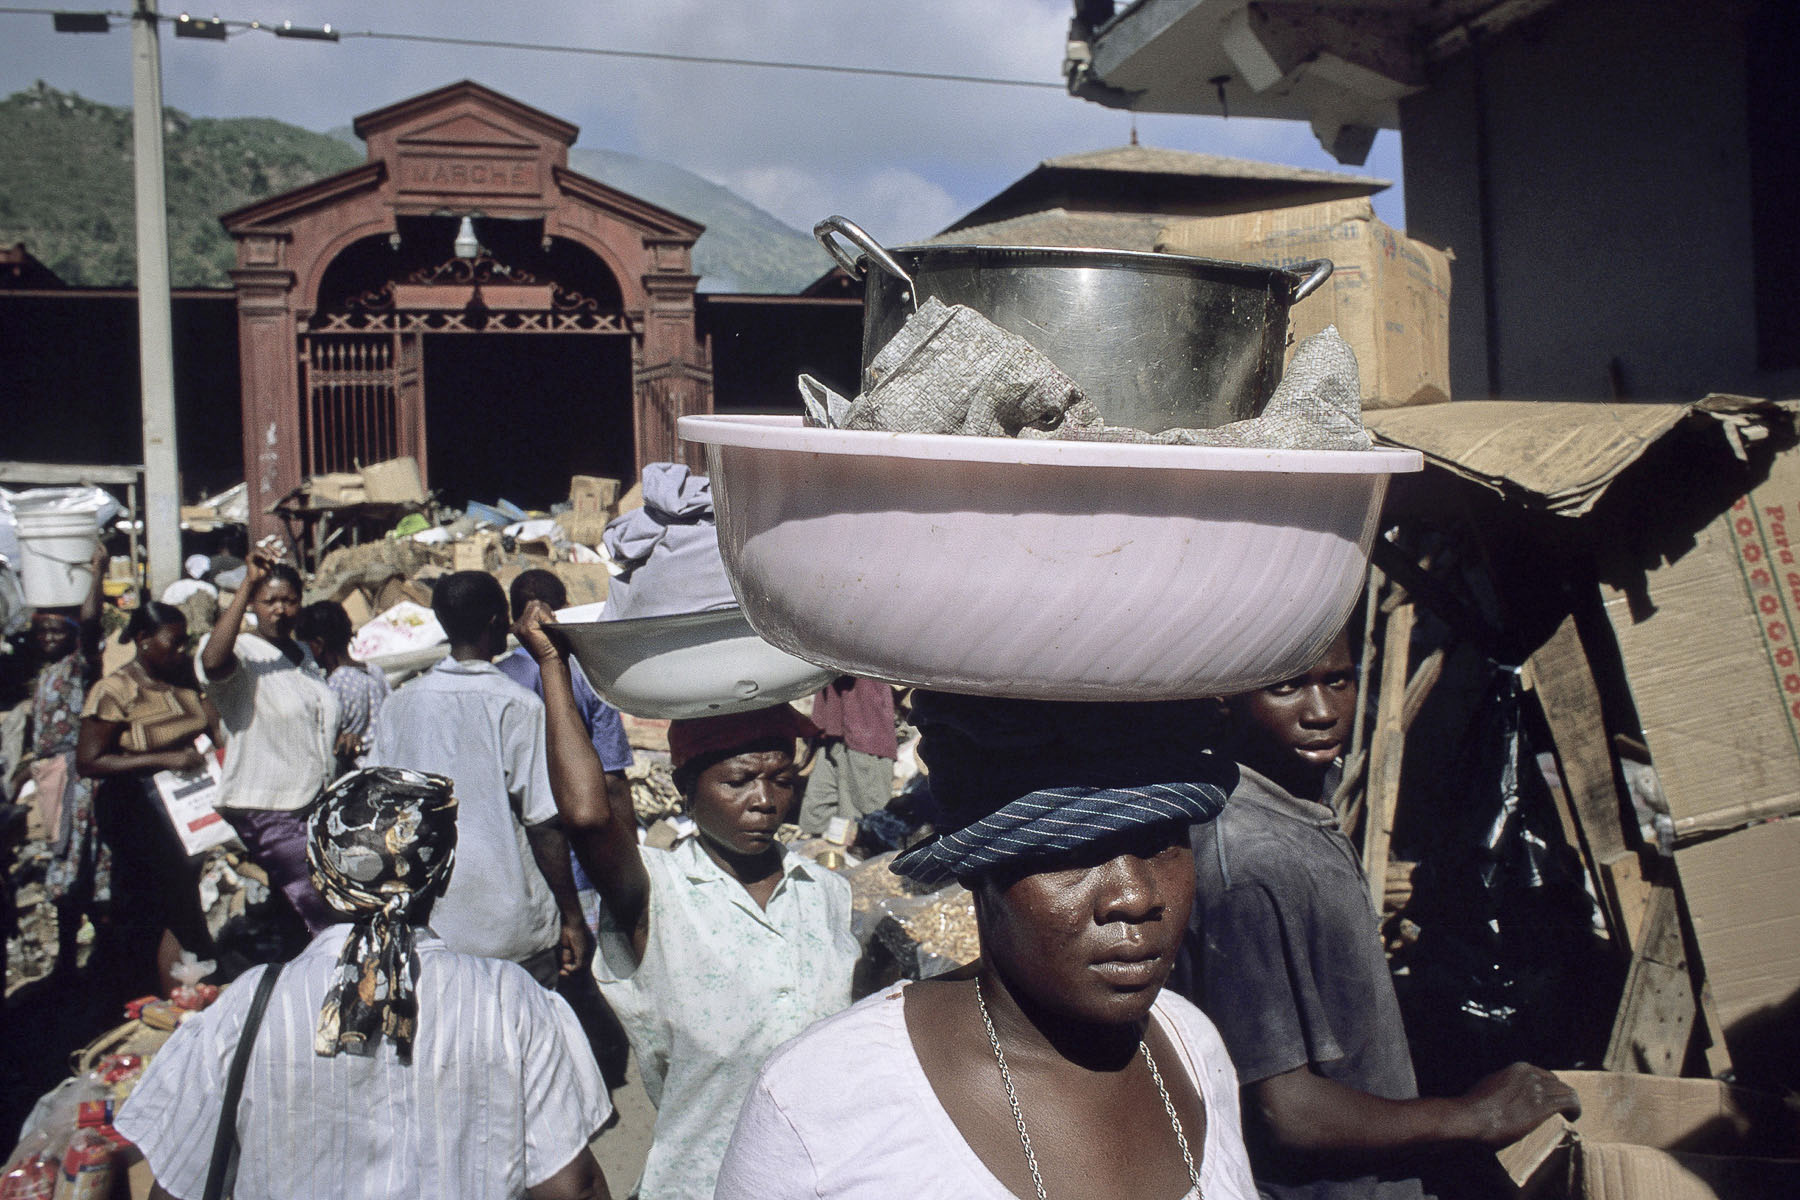 The iron market in Cap-Haitien historic center in October 2003